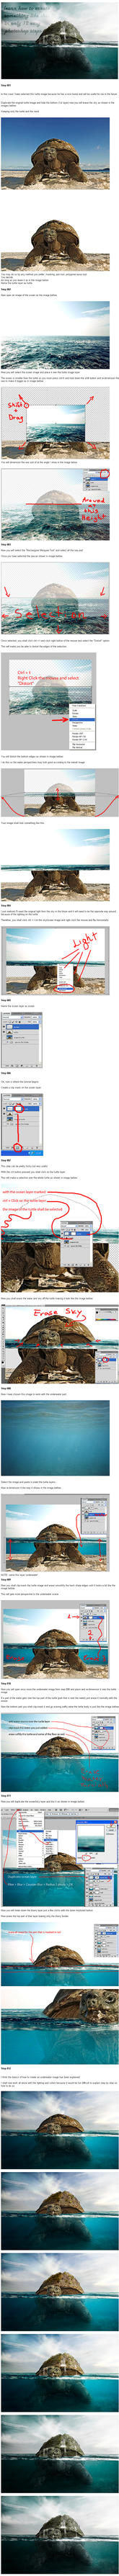 Under Water Easy Photoshop Tutorial by PSHoudini